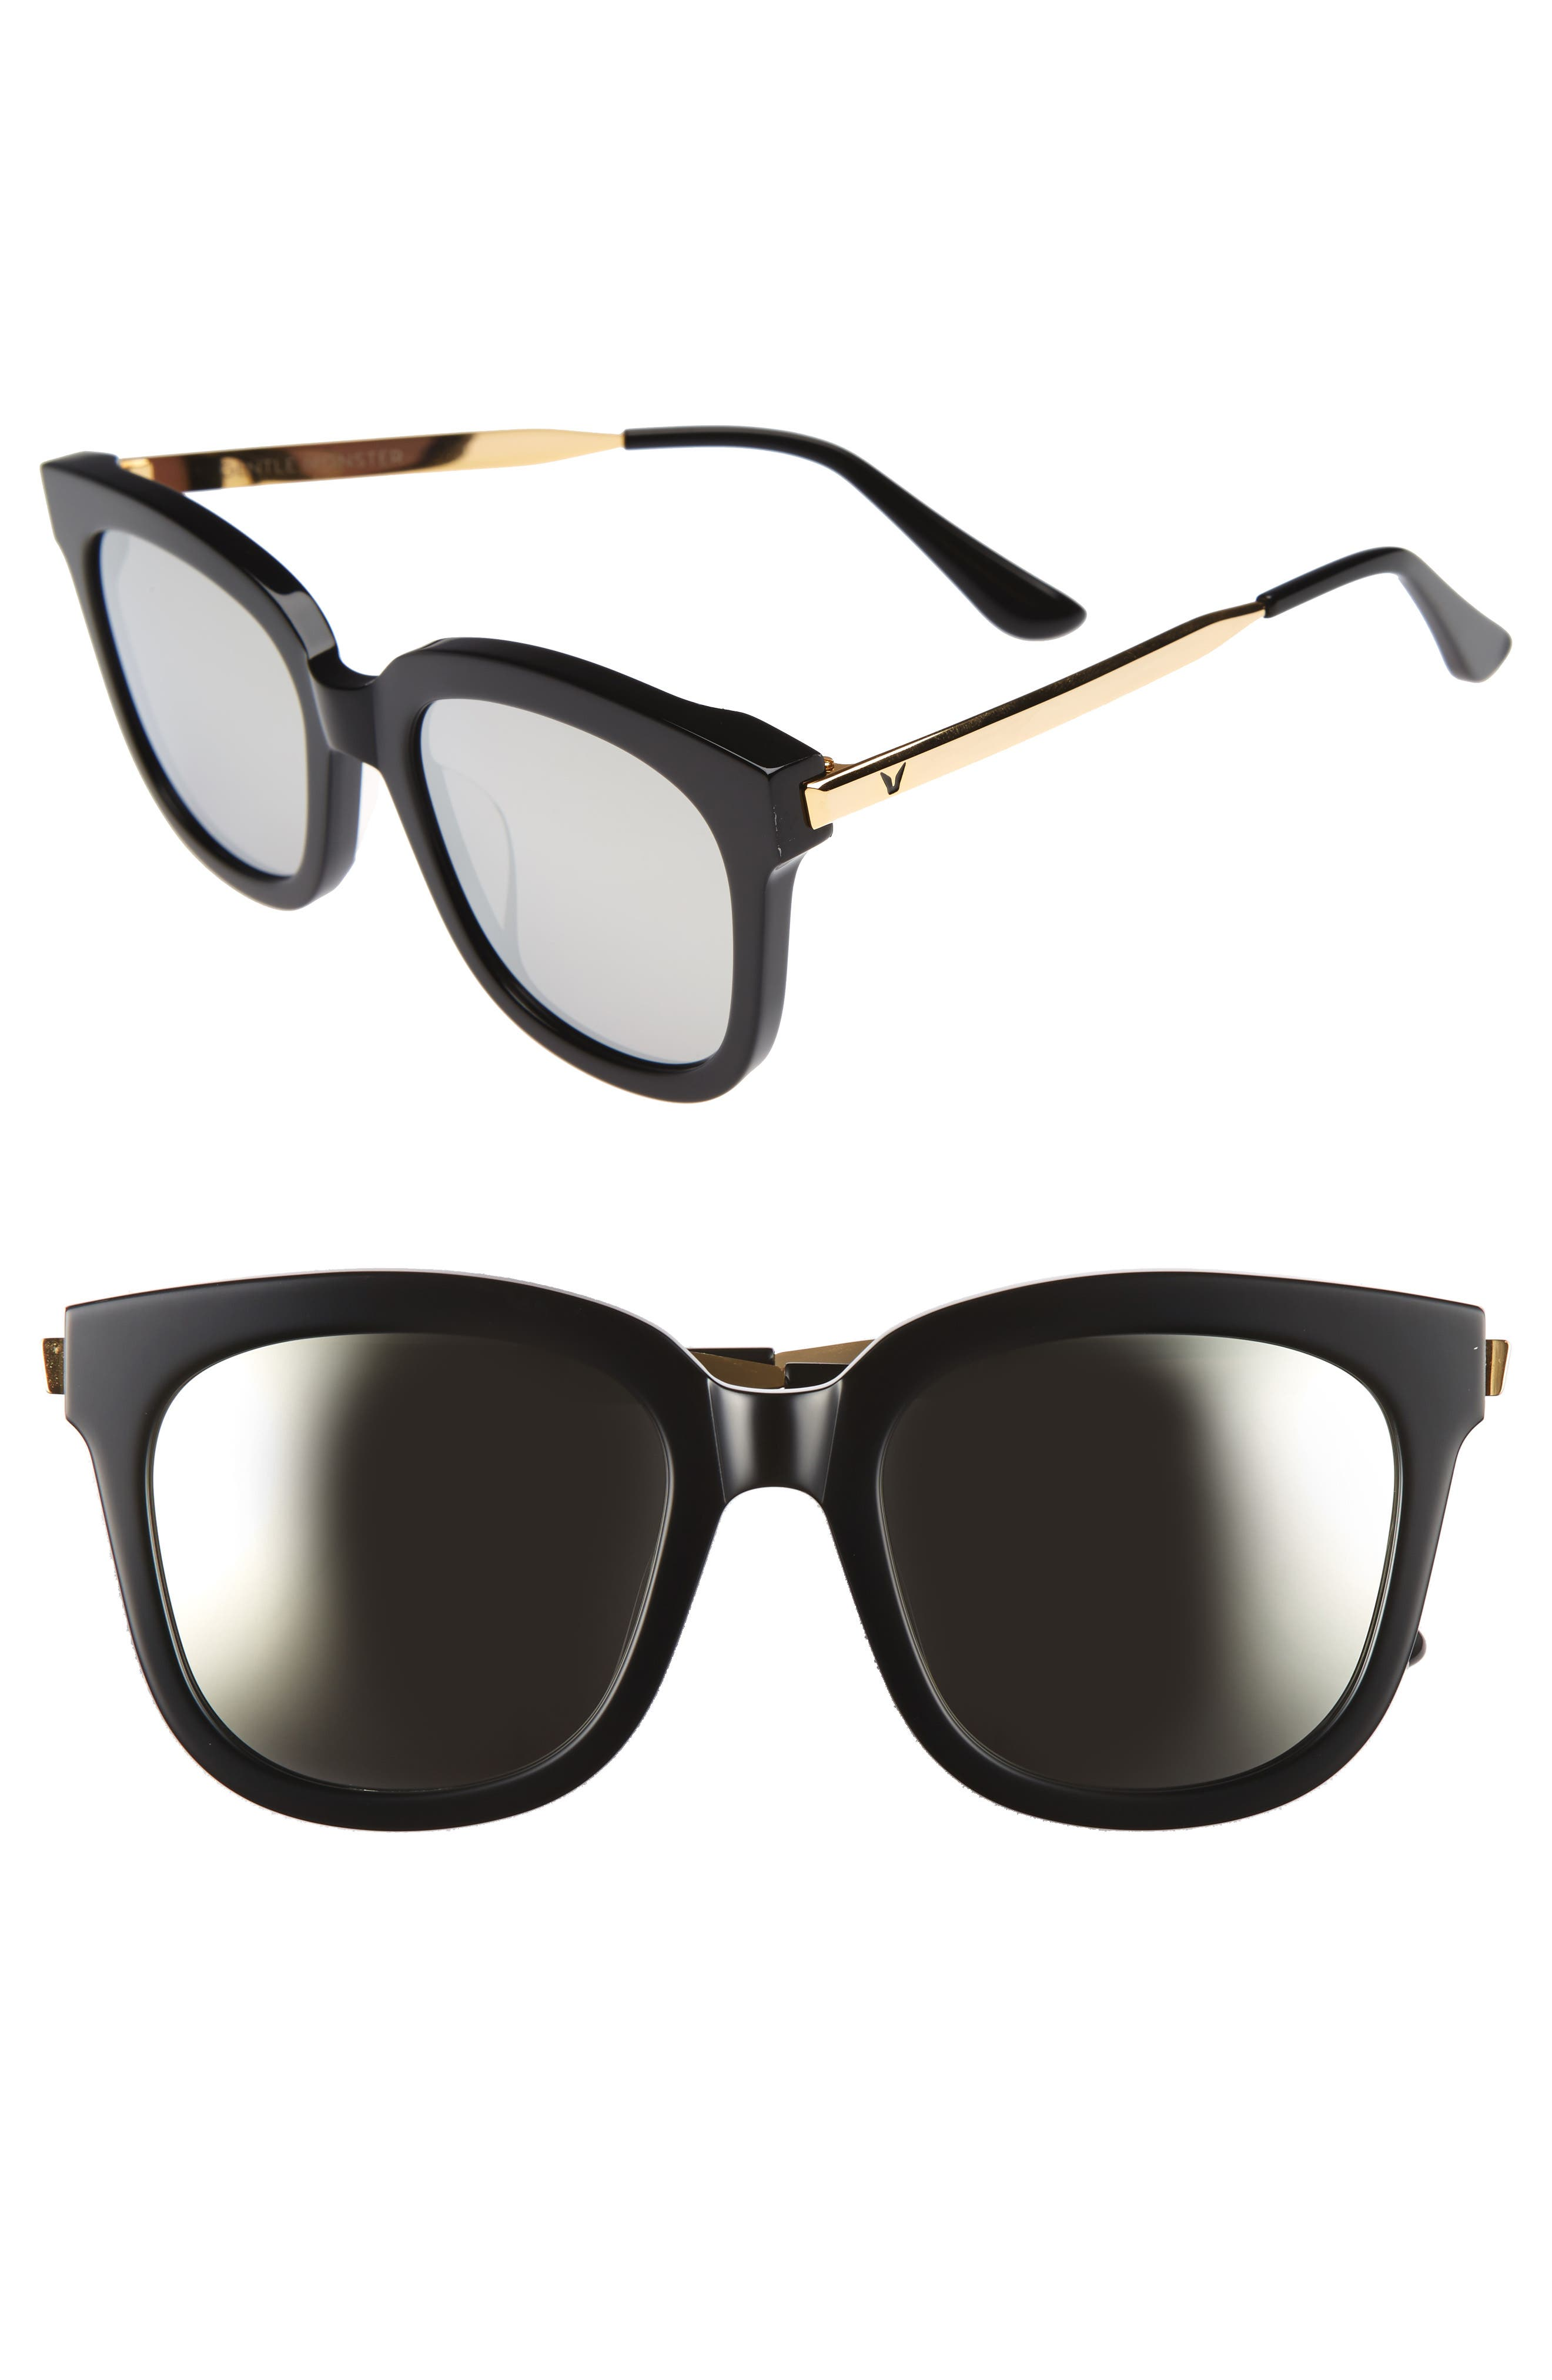 Absente 54mm Sunglasses,                             Main thumbnail 2, color,